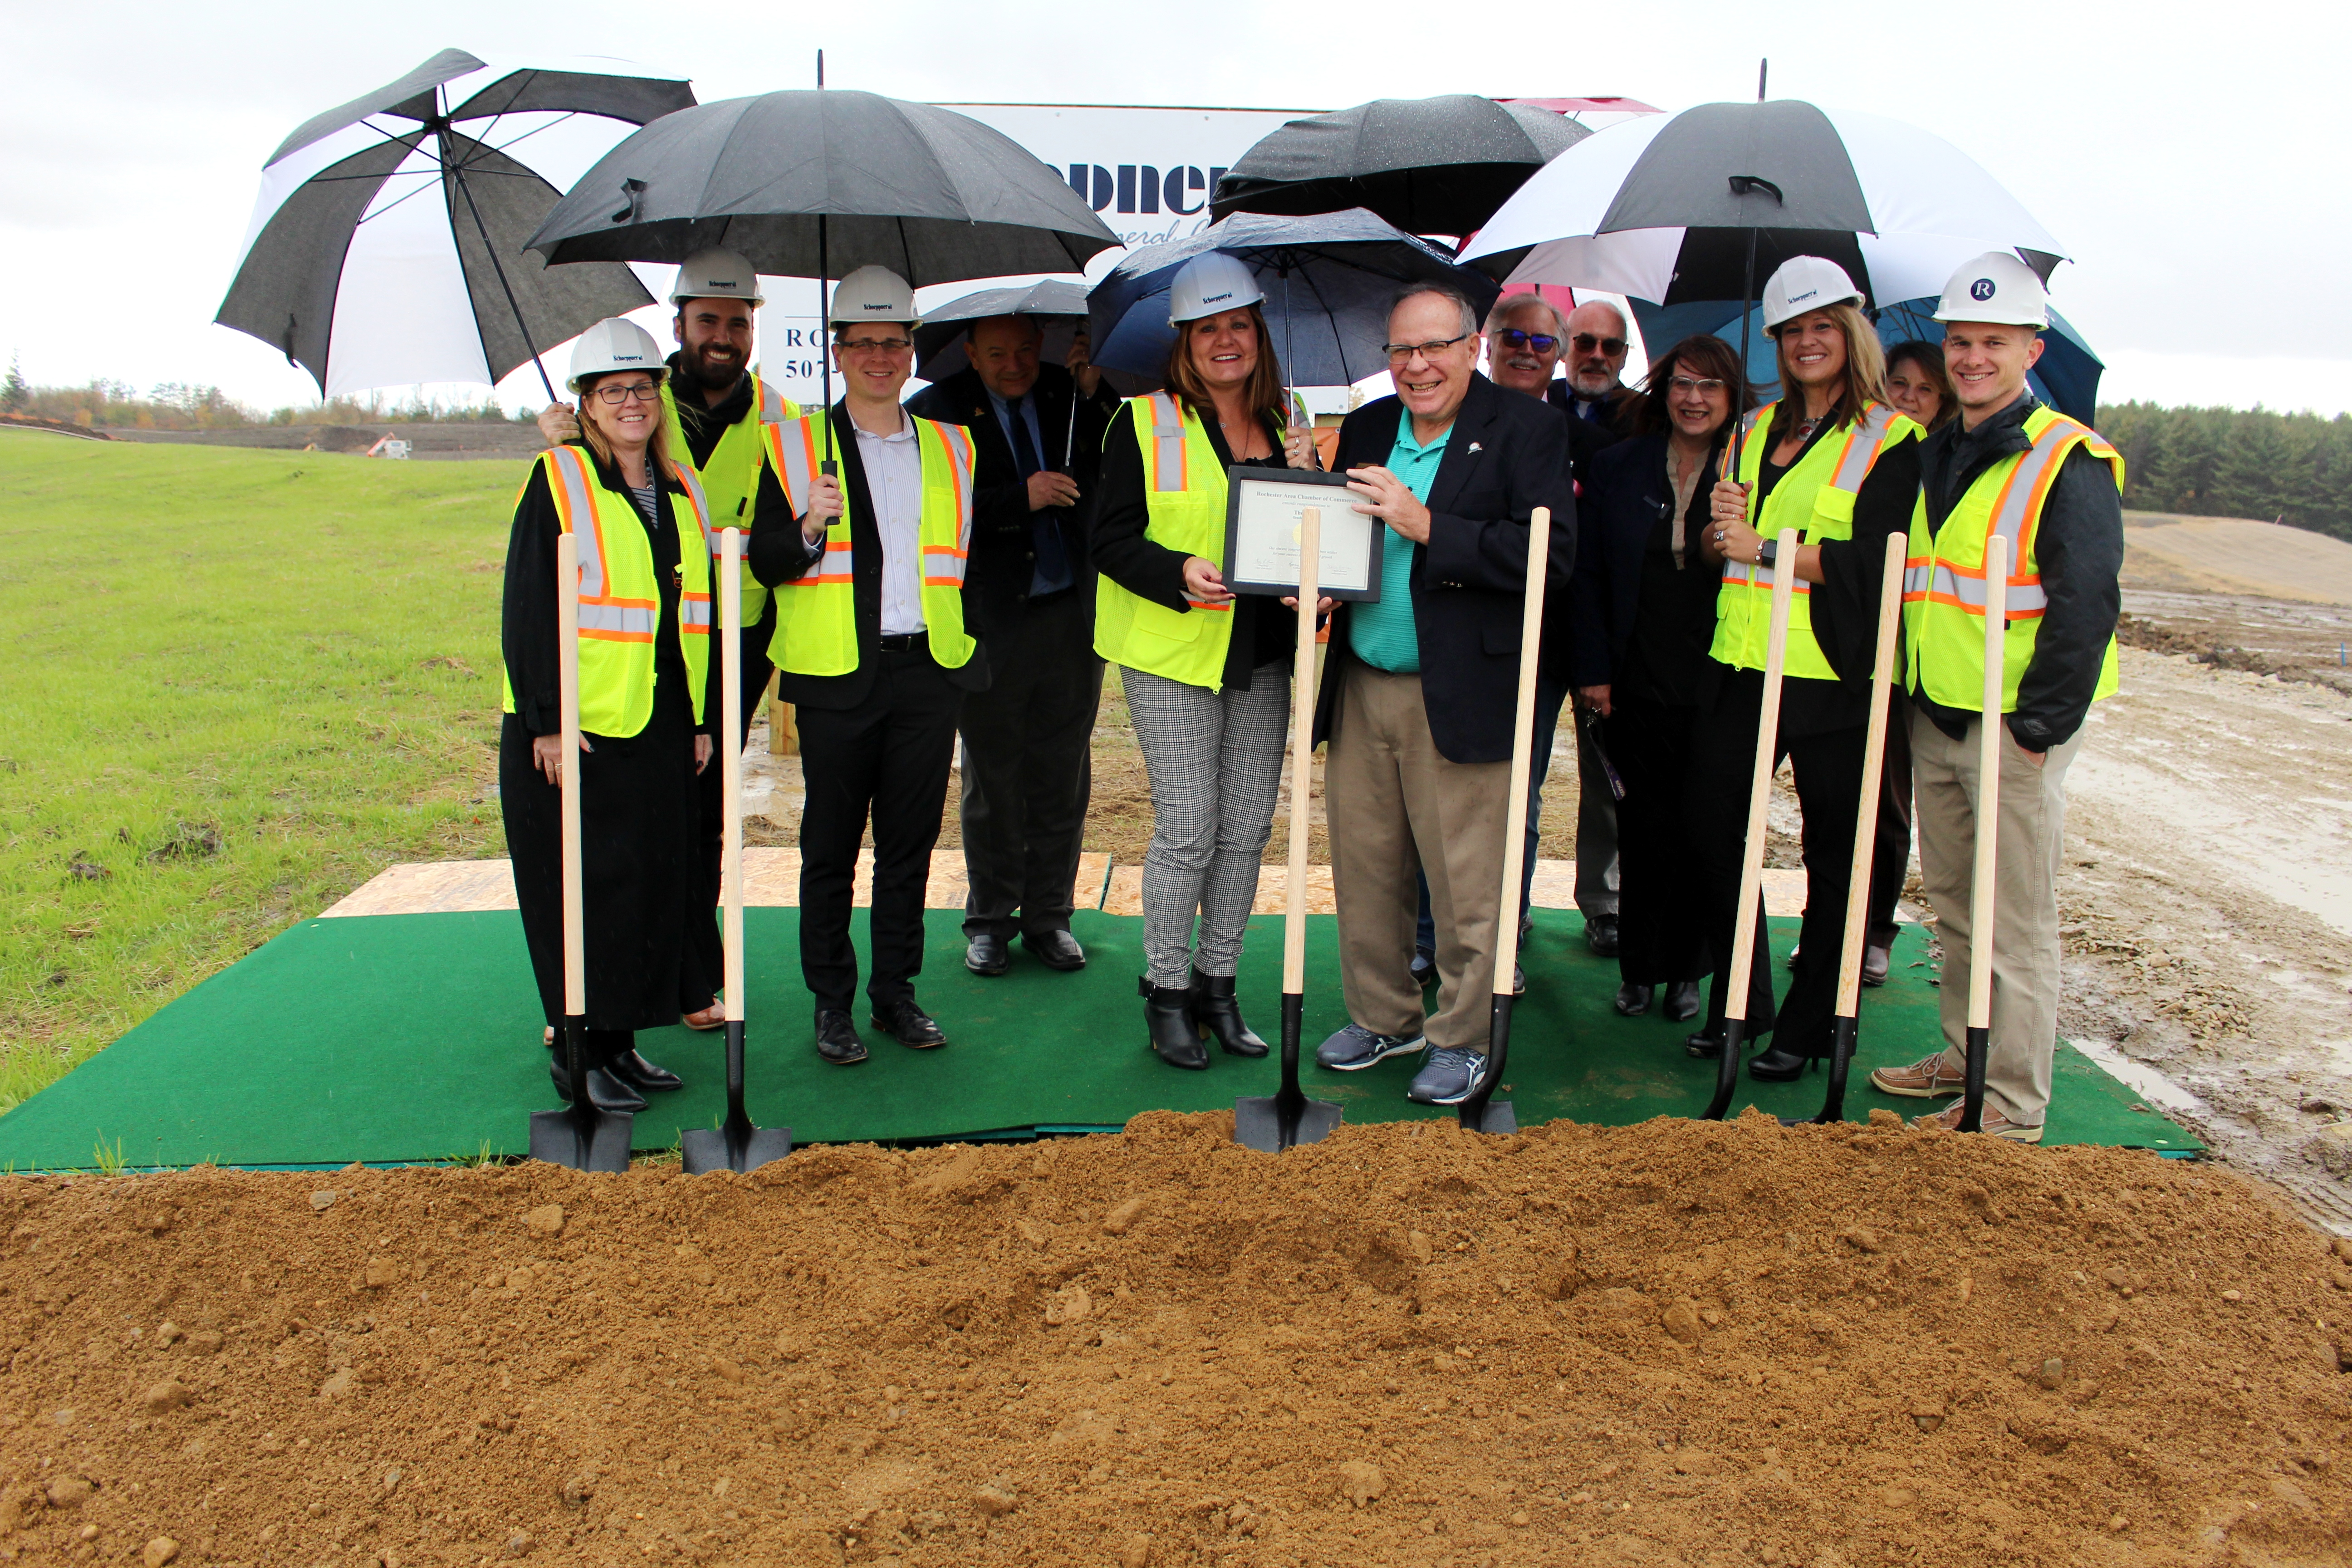 Ground Breaking at Pines